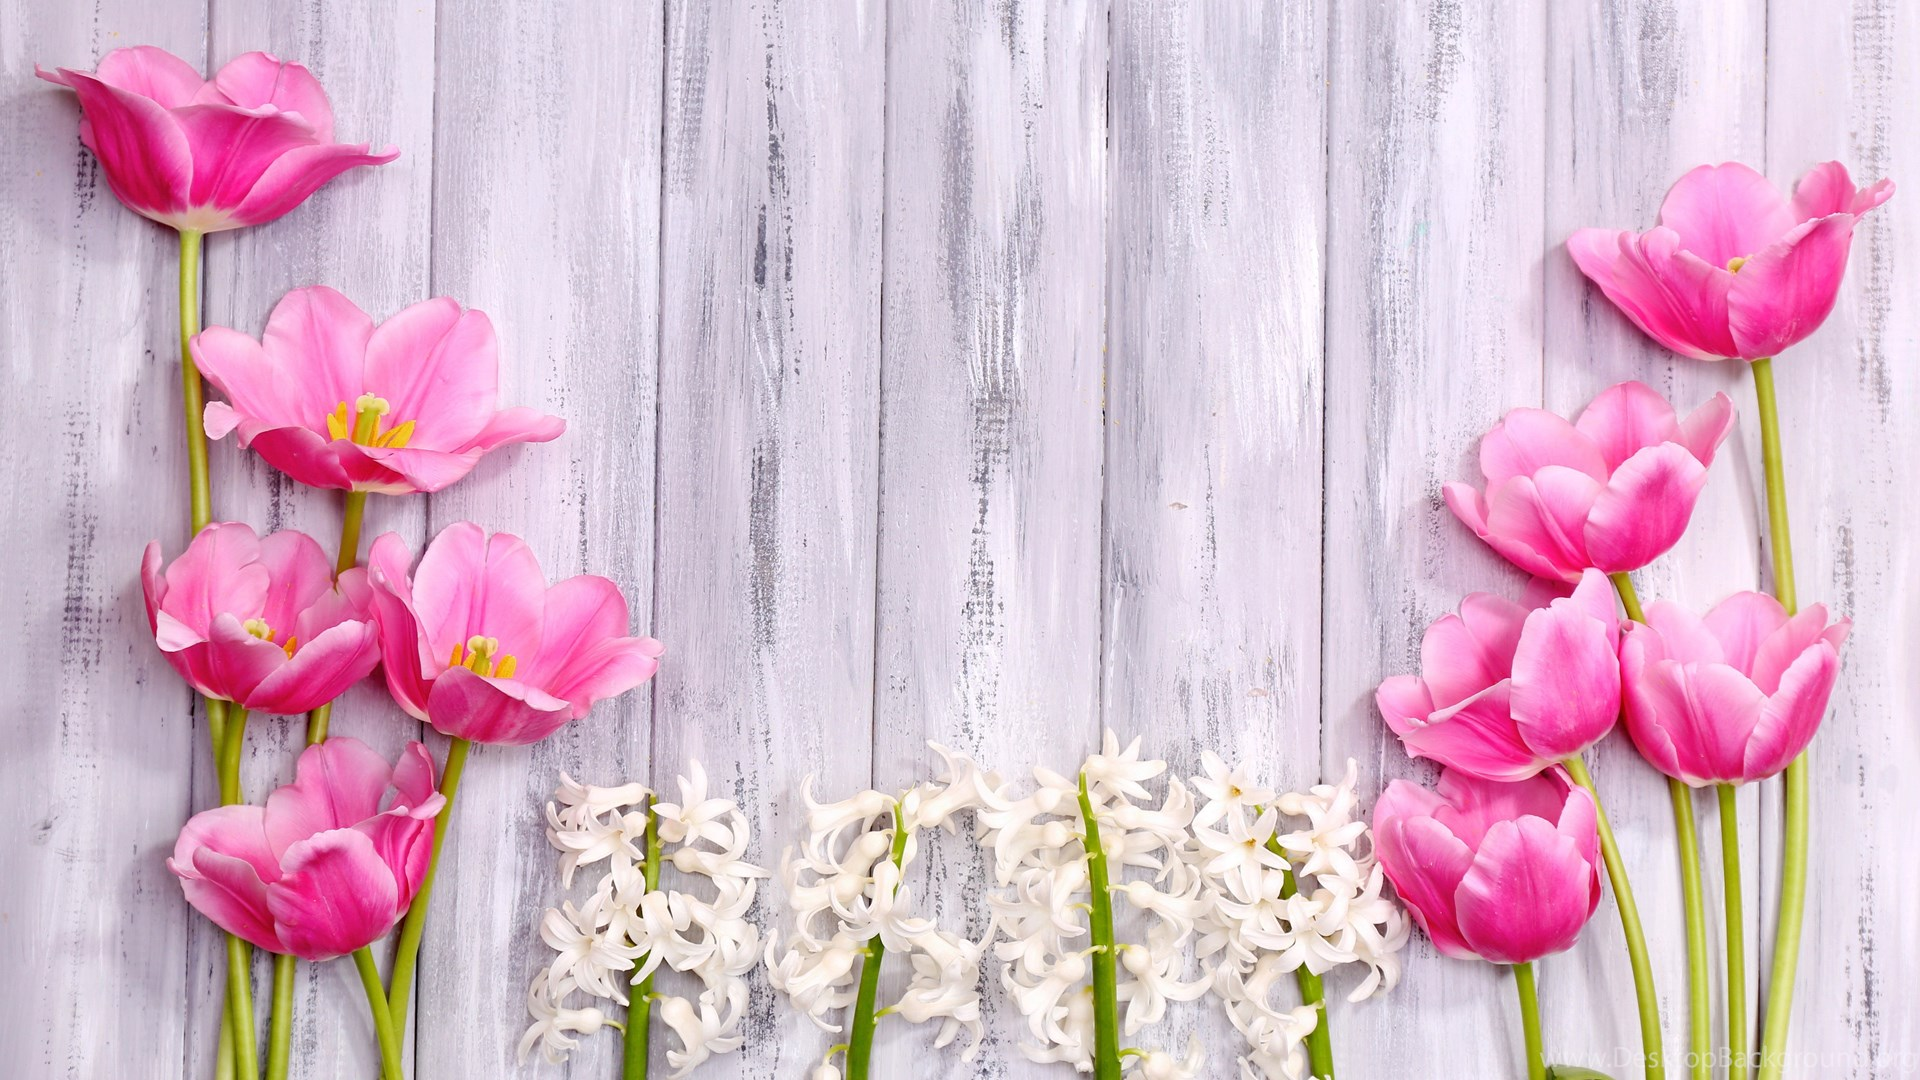 Iphone 4s Girly Wallpapers Flowers Spring Flowers Hyacinth Wood Tulips Shutterstock